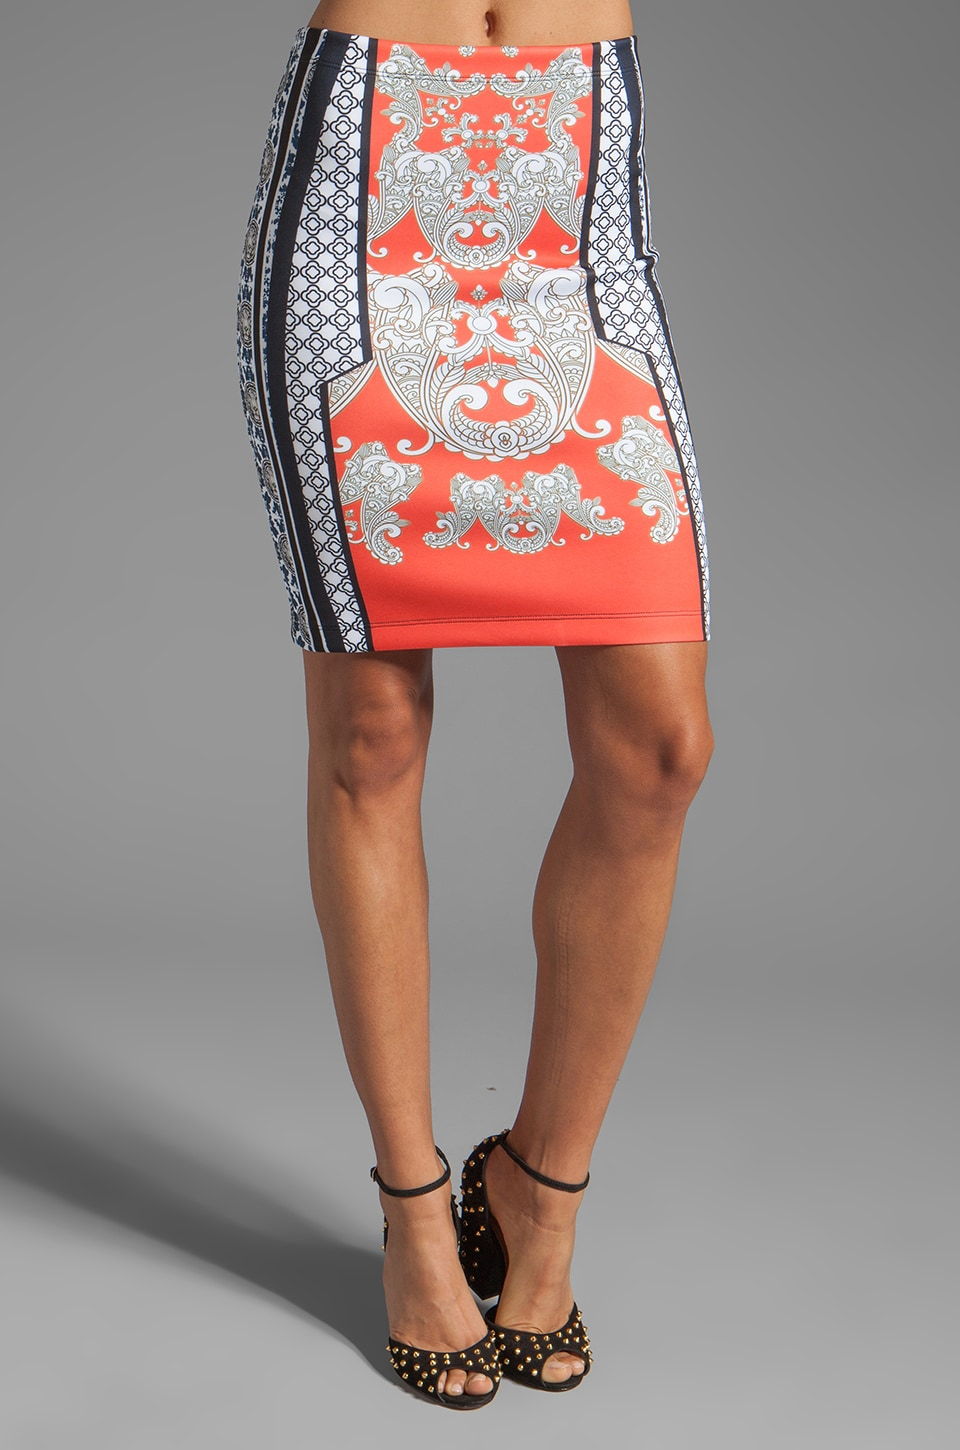 Clover Canyon Bollywood Neoprene Skirt in Orange